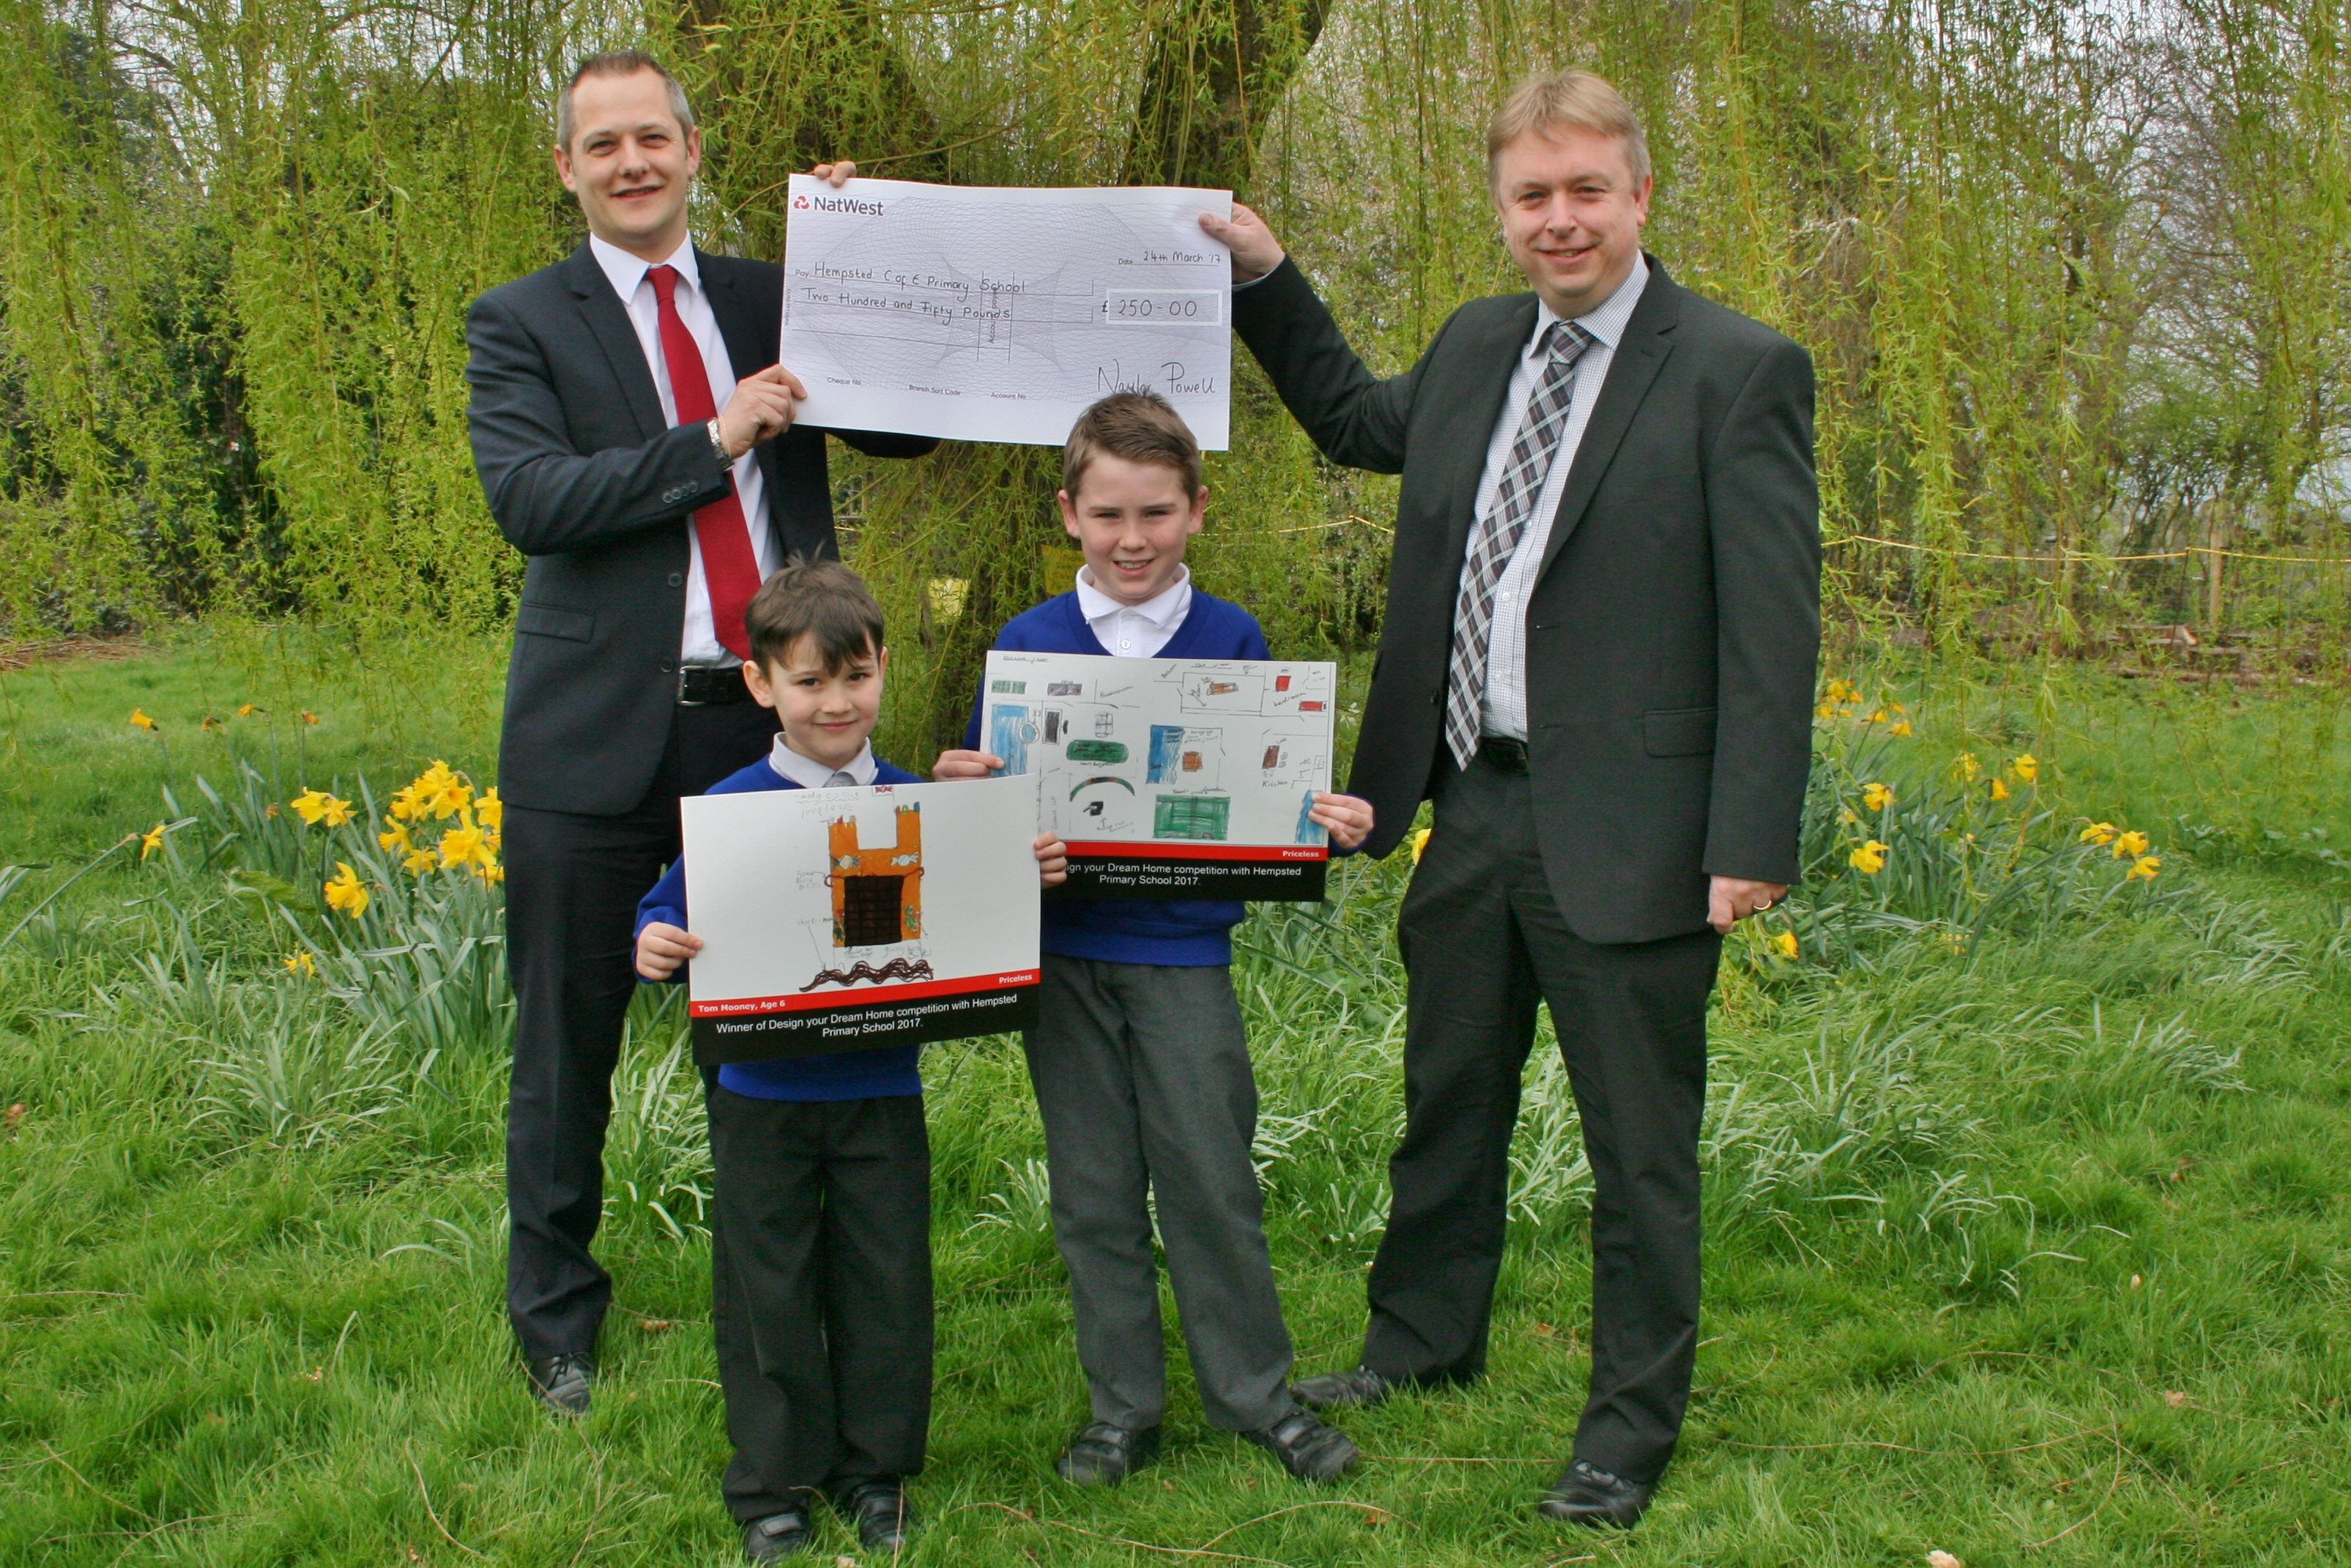 Budding architects in Hempsted School